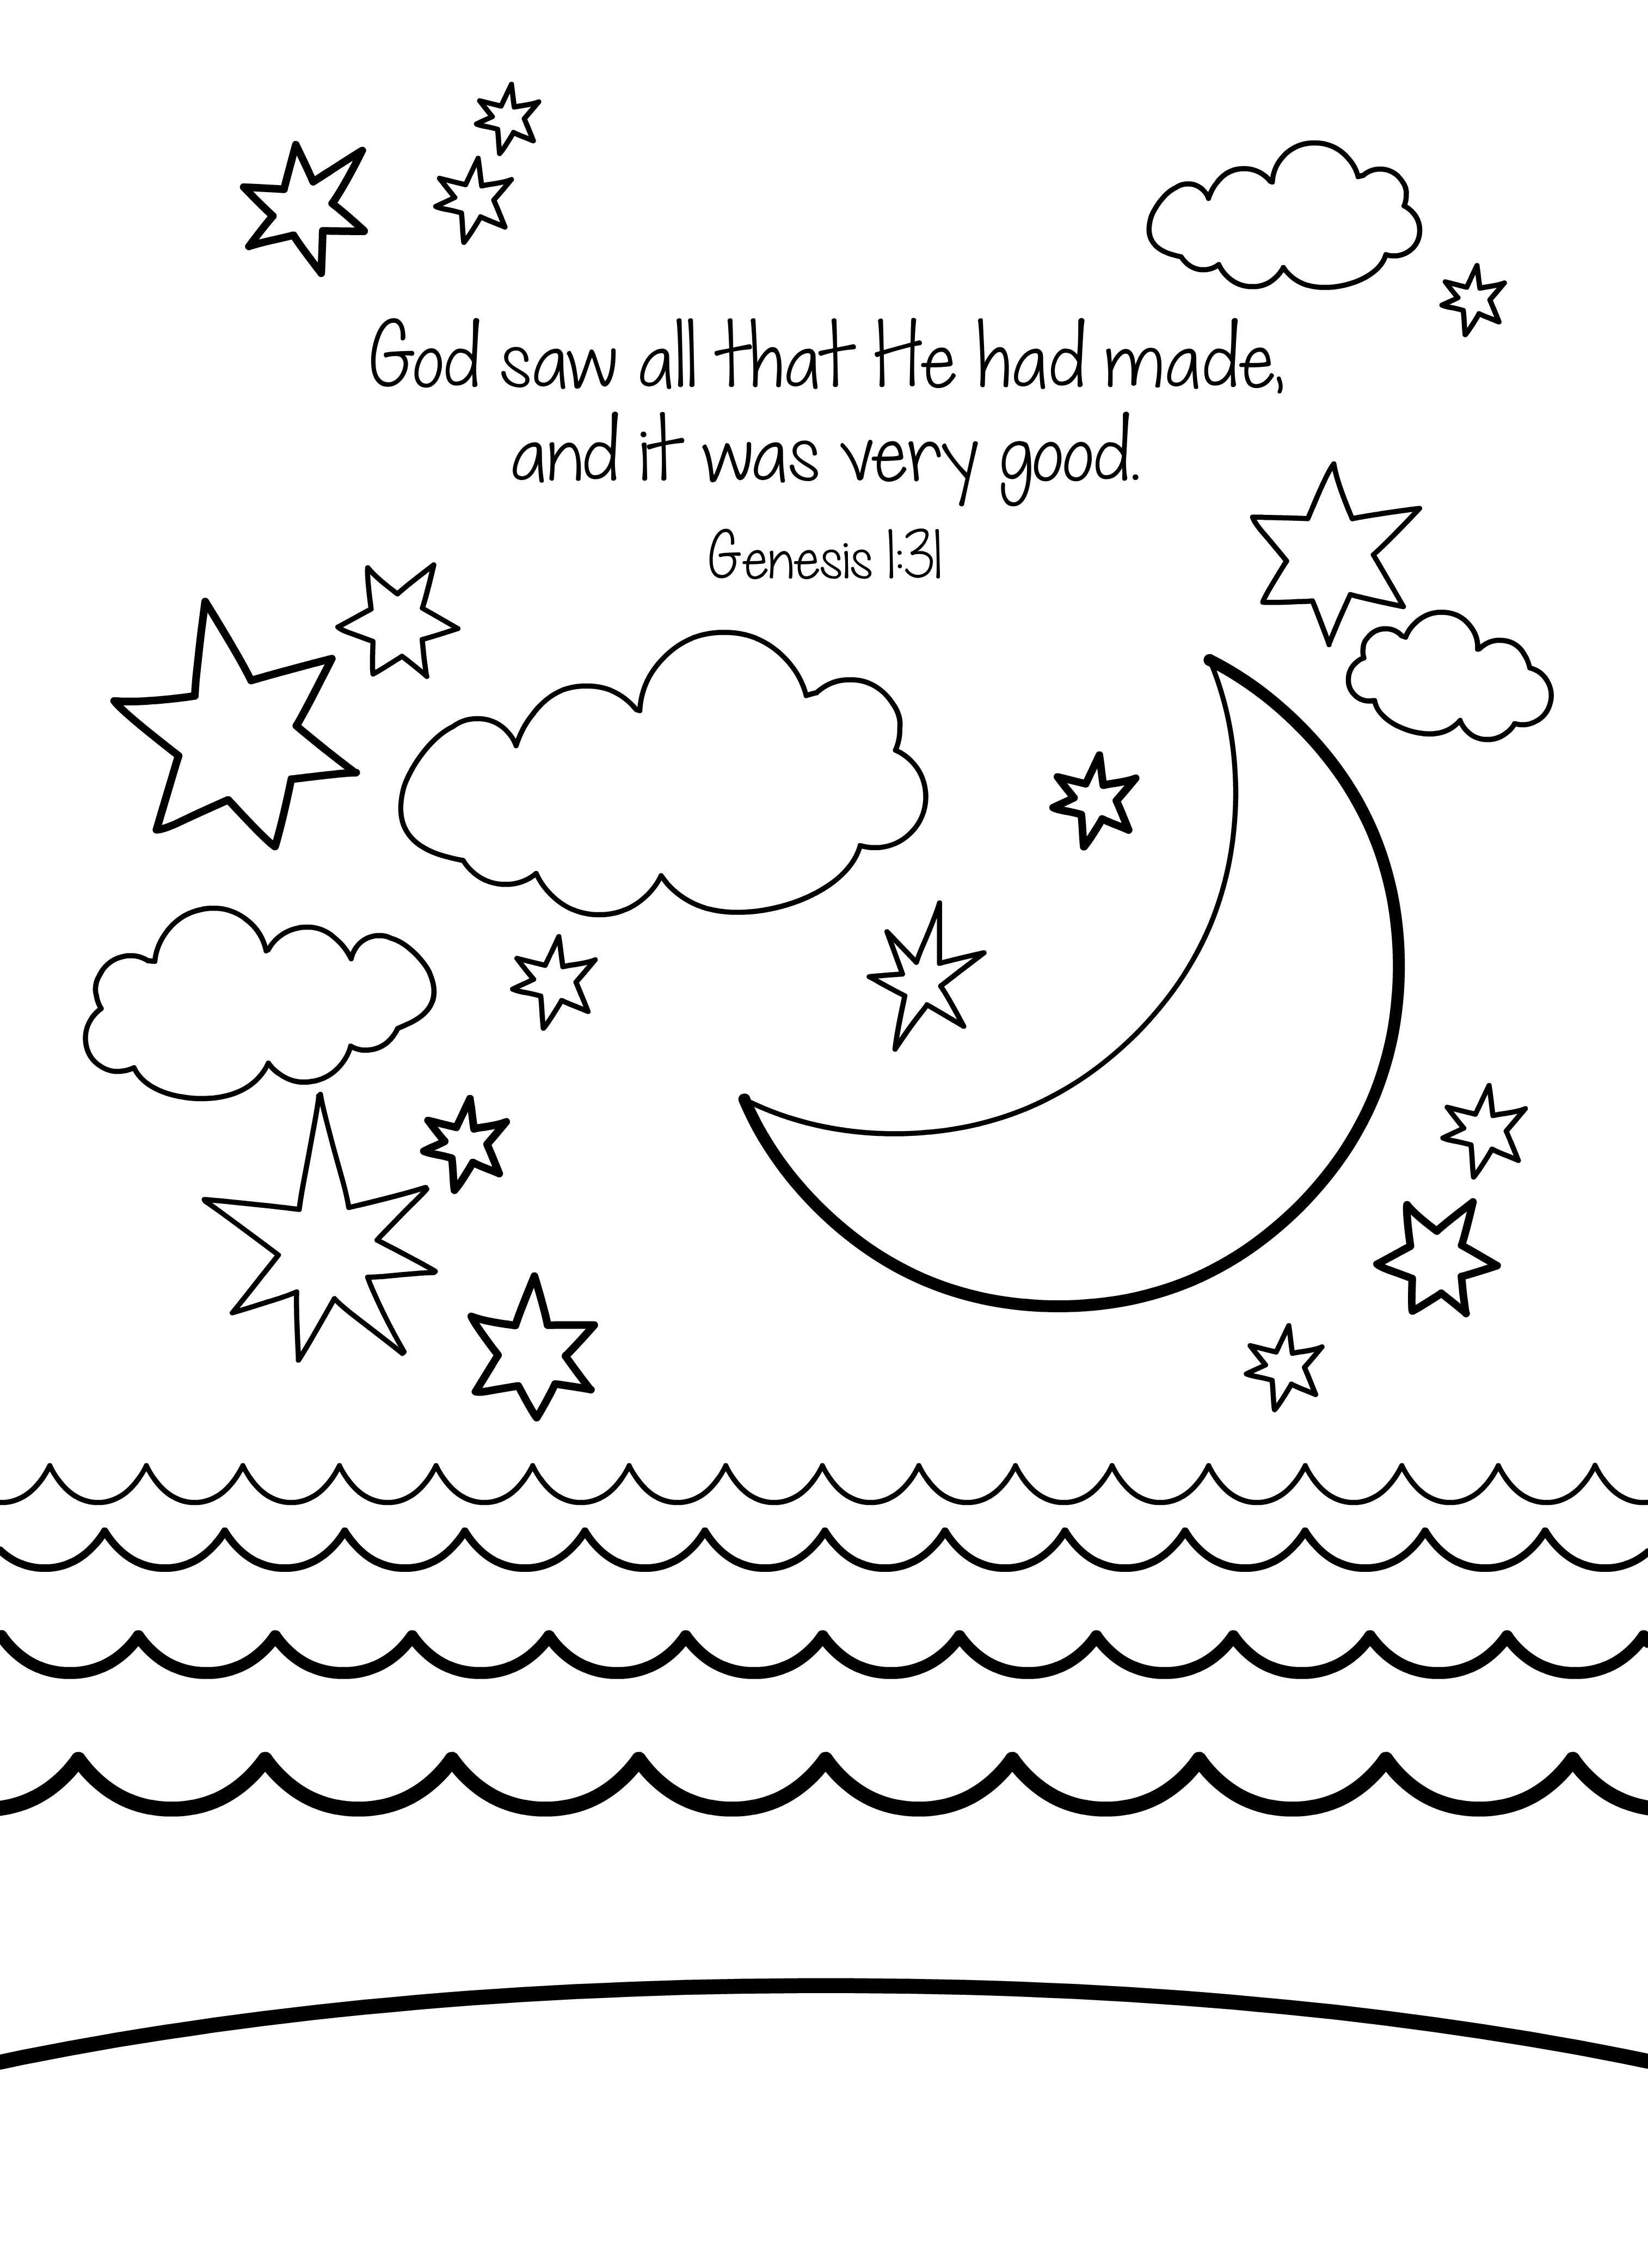 9 Pics Of Bible Verse Genesis 1 Coloring Pages - Bible ...